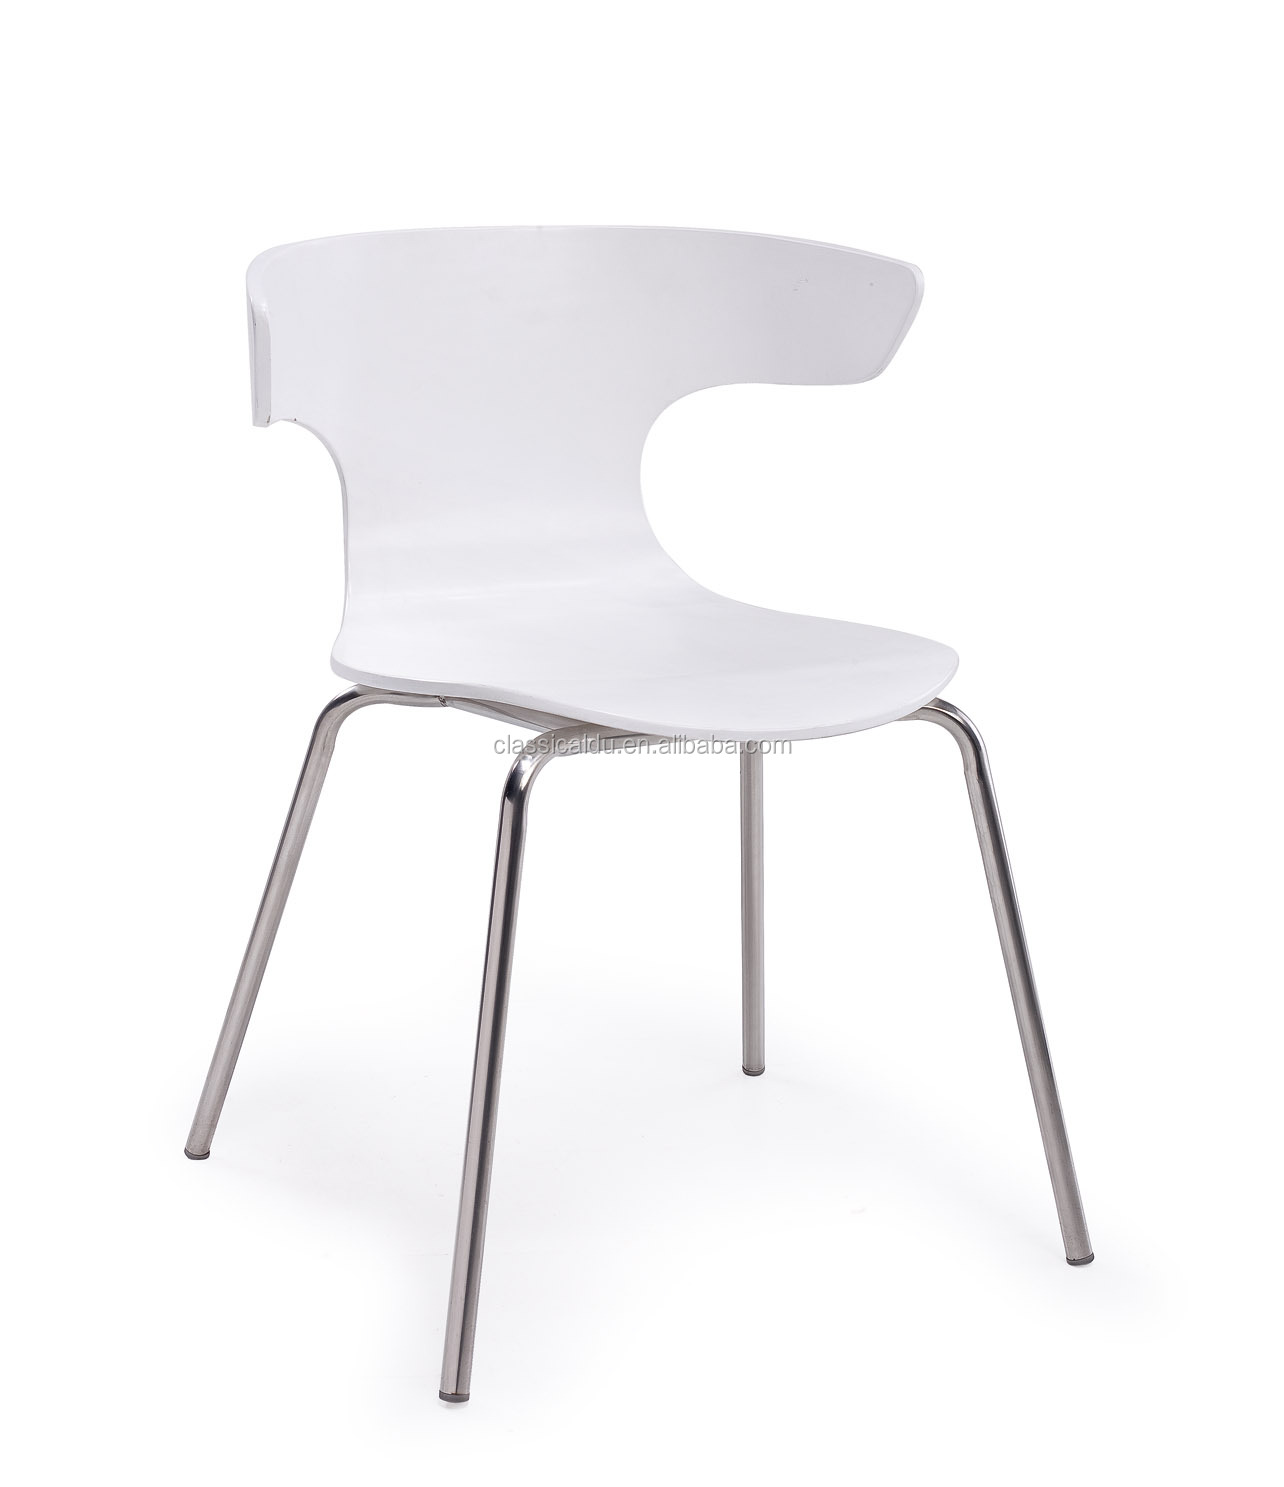 Restaurant table and chairs - Restaurant Dining Tables And Chairs Cheap Restaurant Tables Chairs Stackable Plastic Chair H